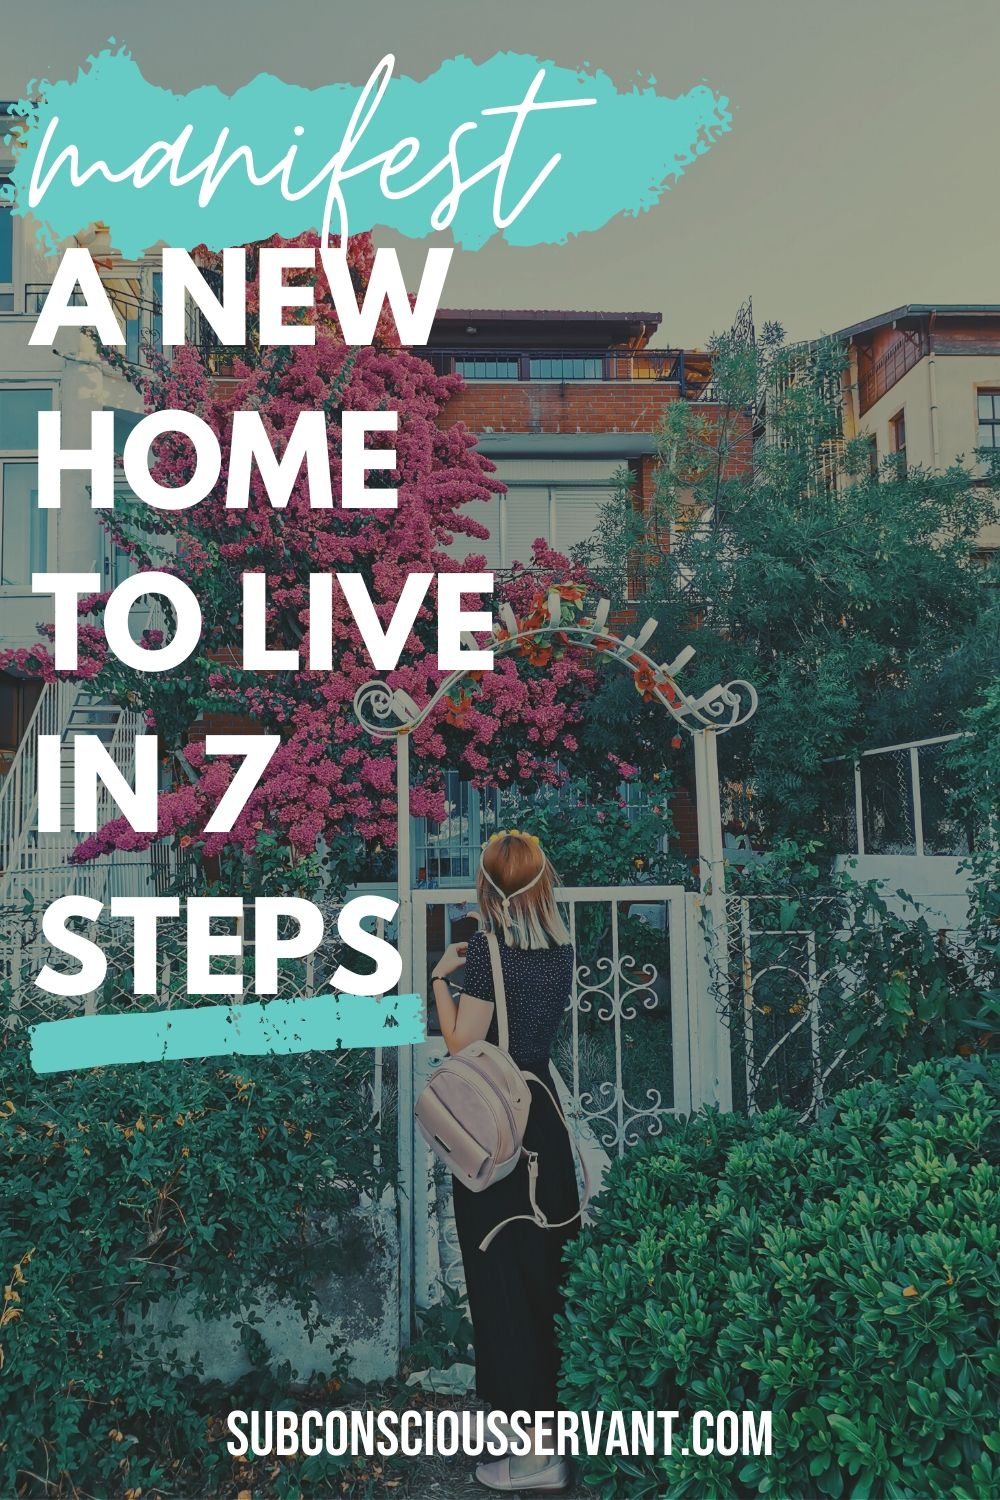 Manifest A New Place to Live In 7 Steps